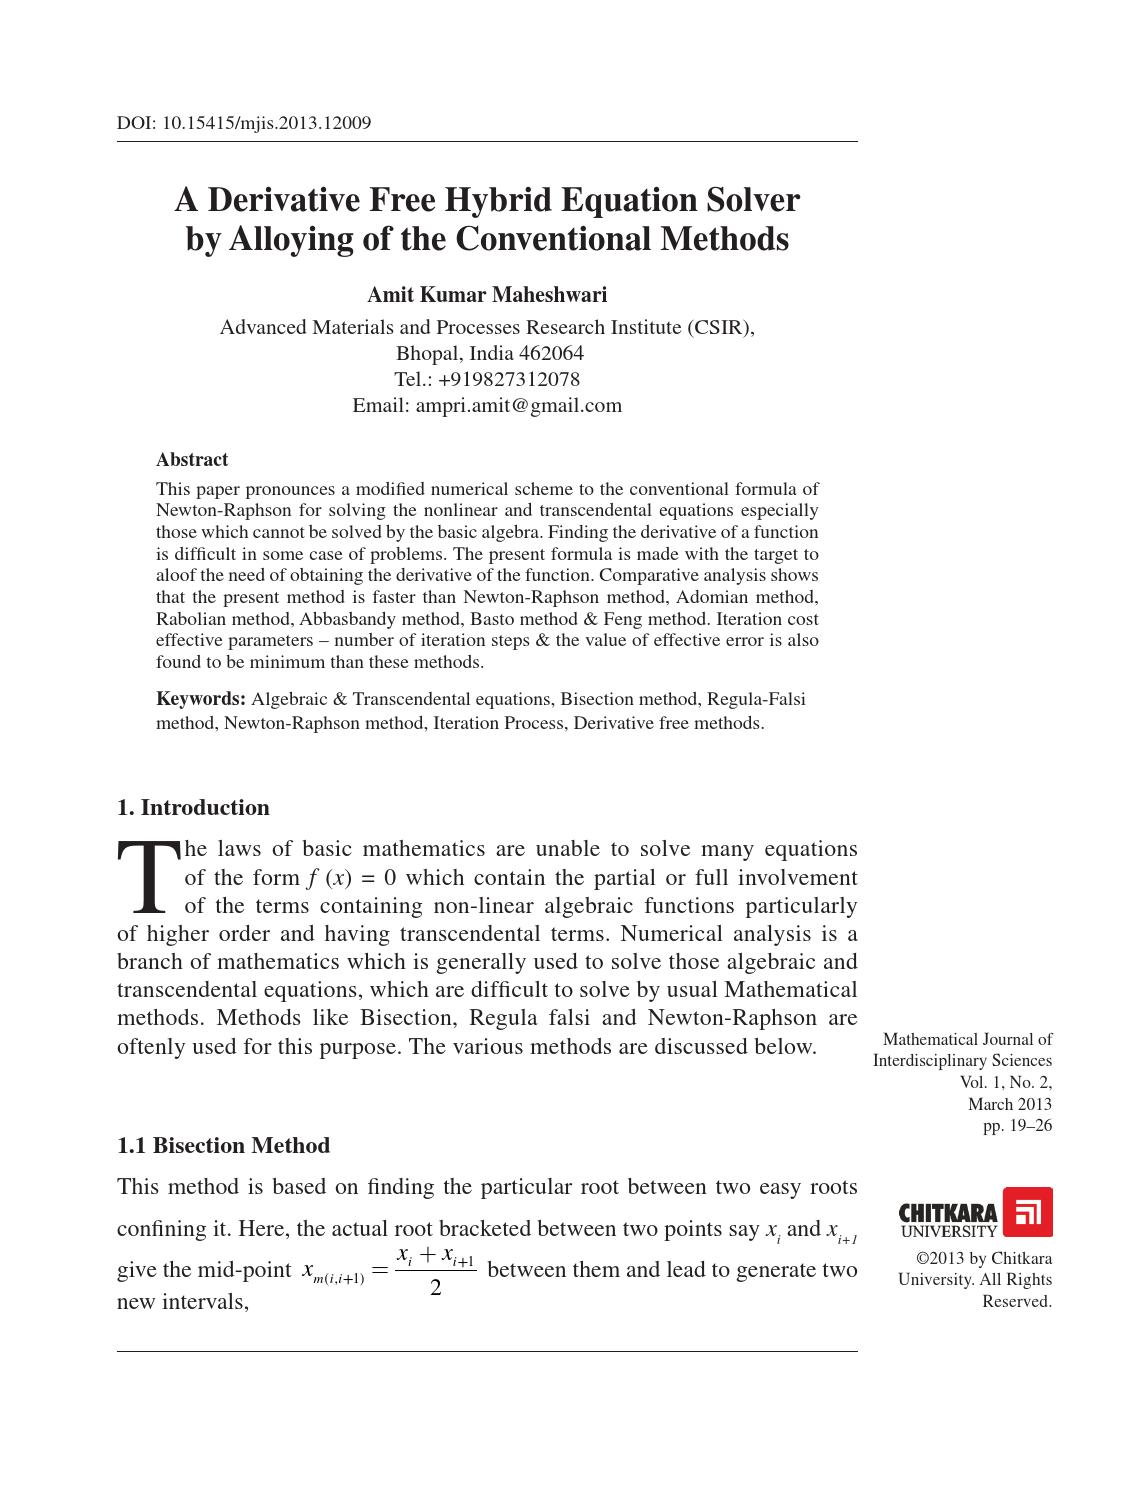 A Derivative Free Hybrid Equation Solver by Alloying of the